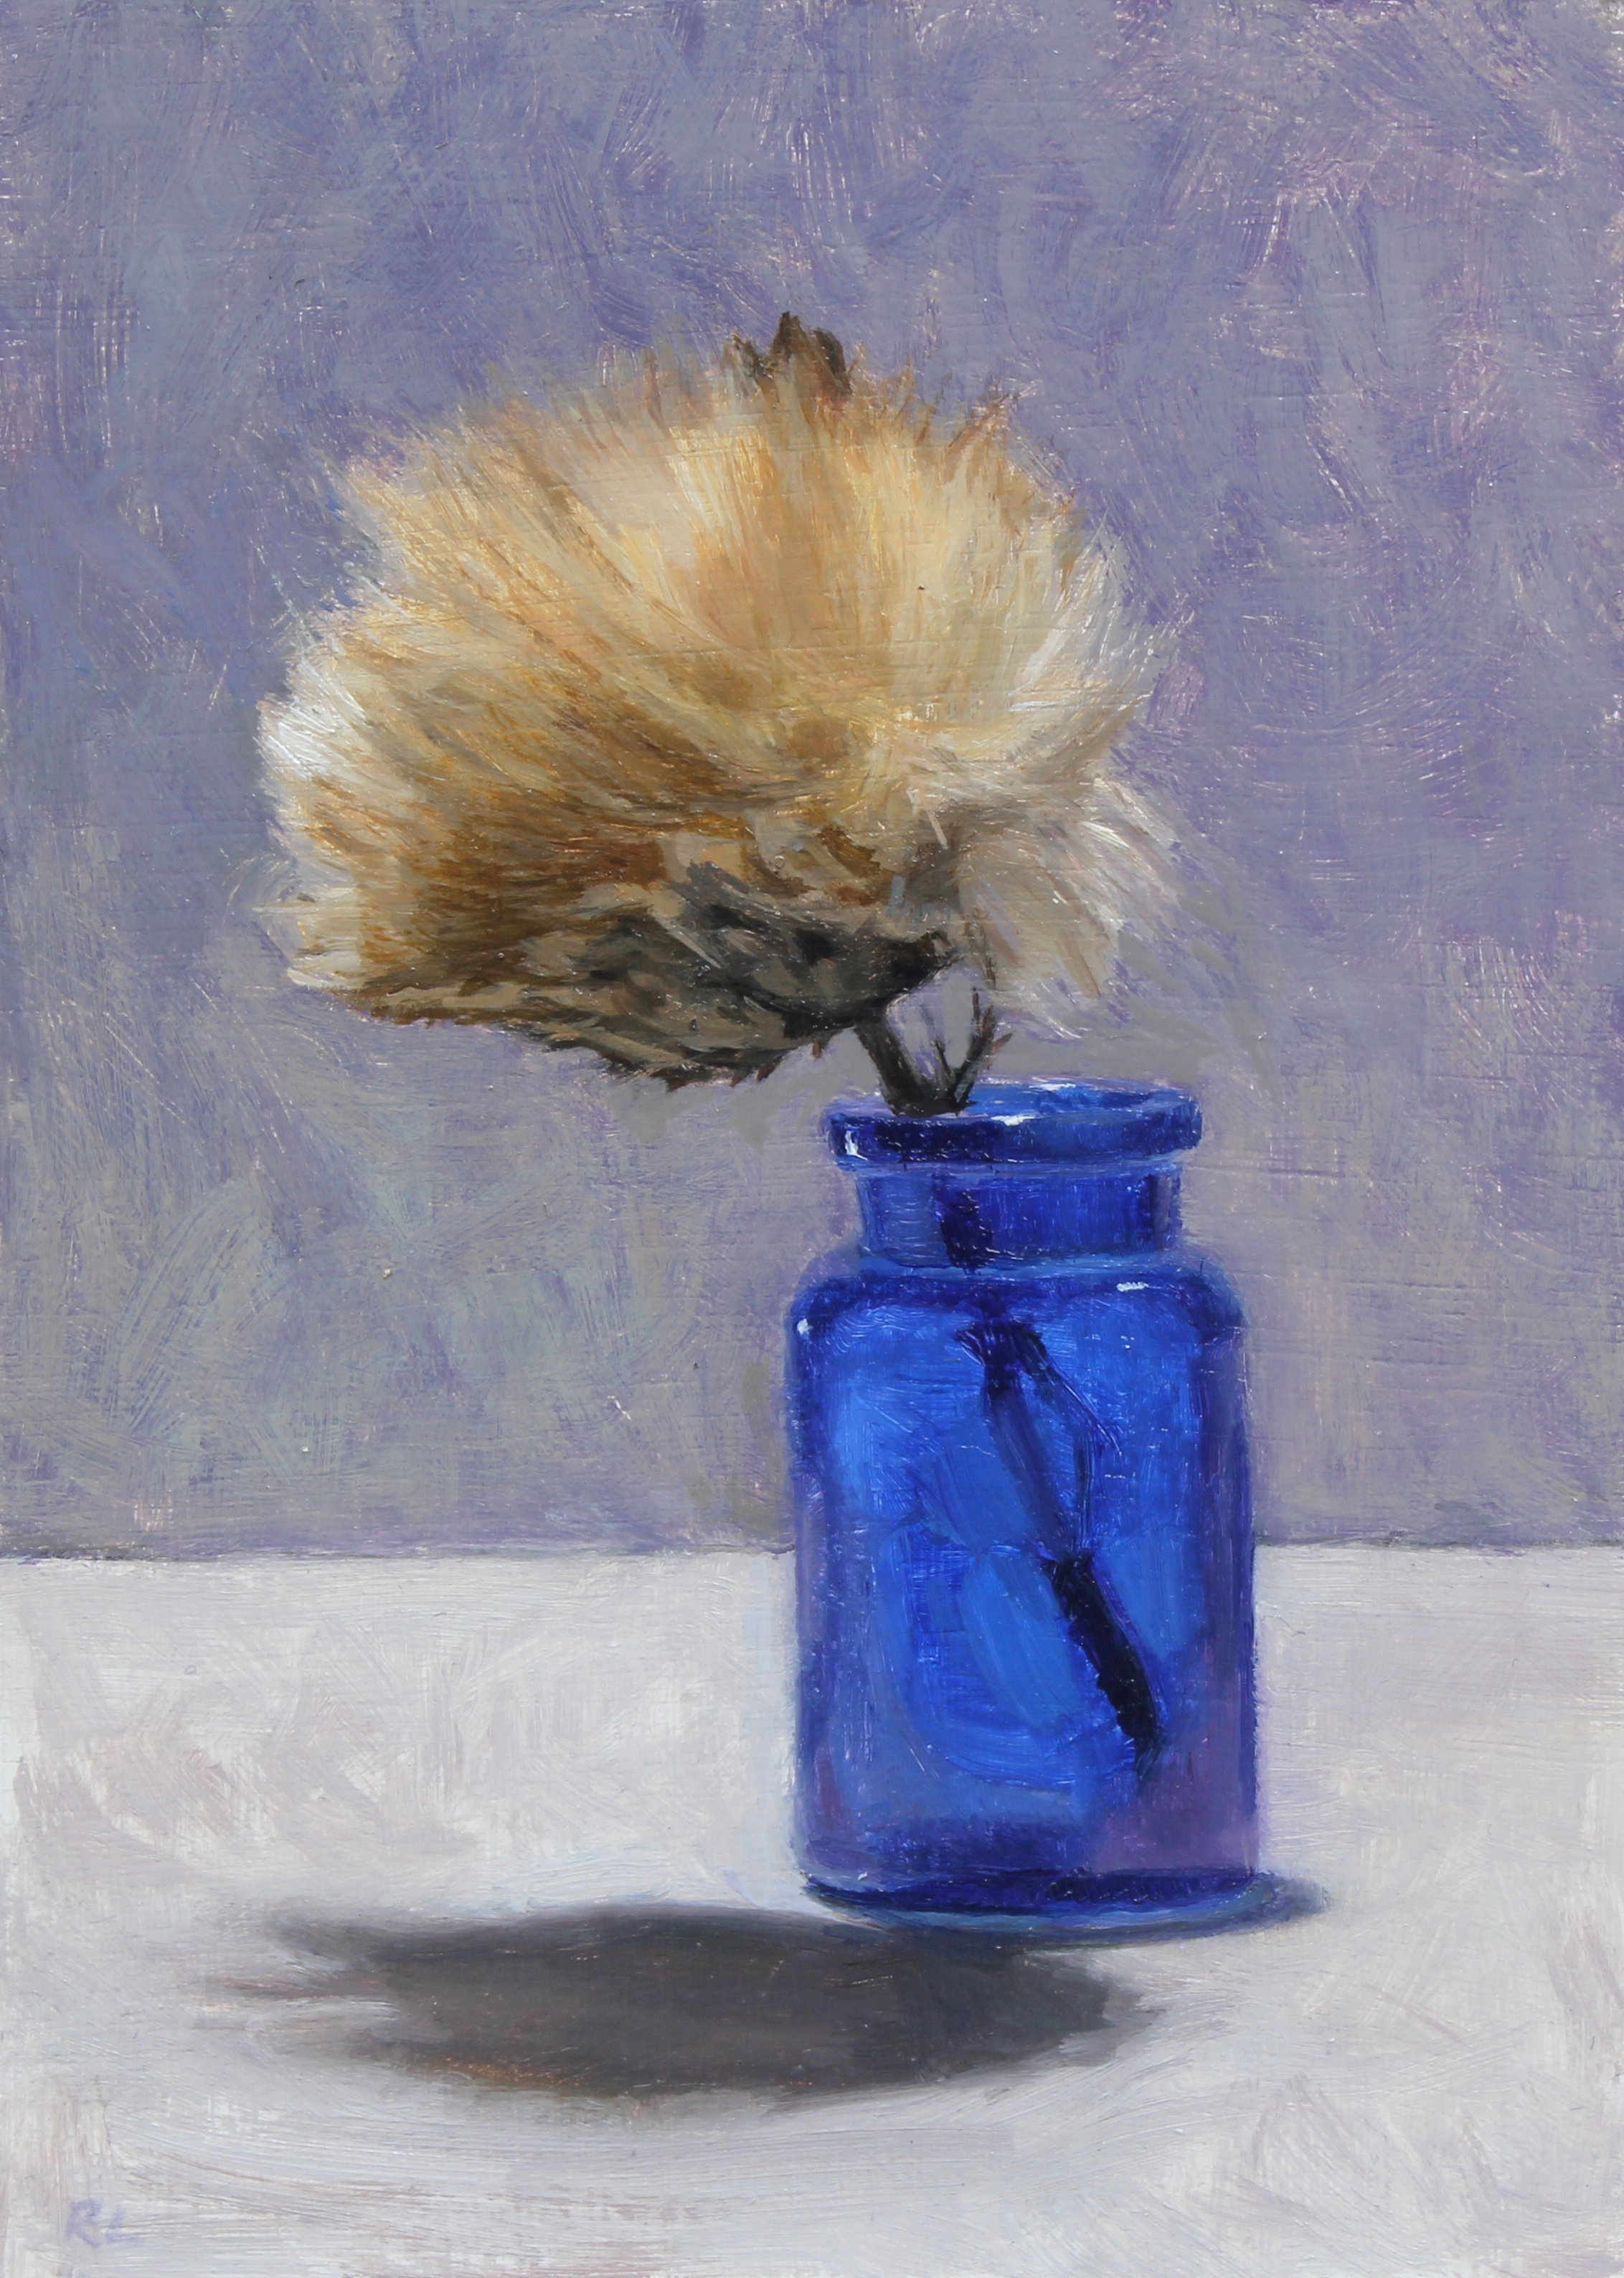 Cardoon Seed Head in a Blue Jar